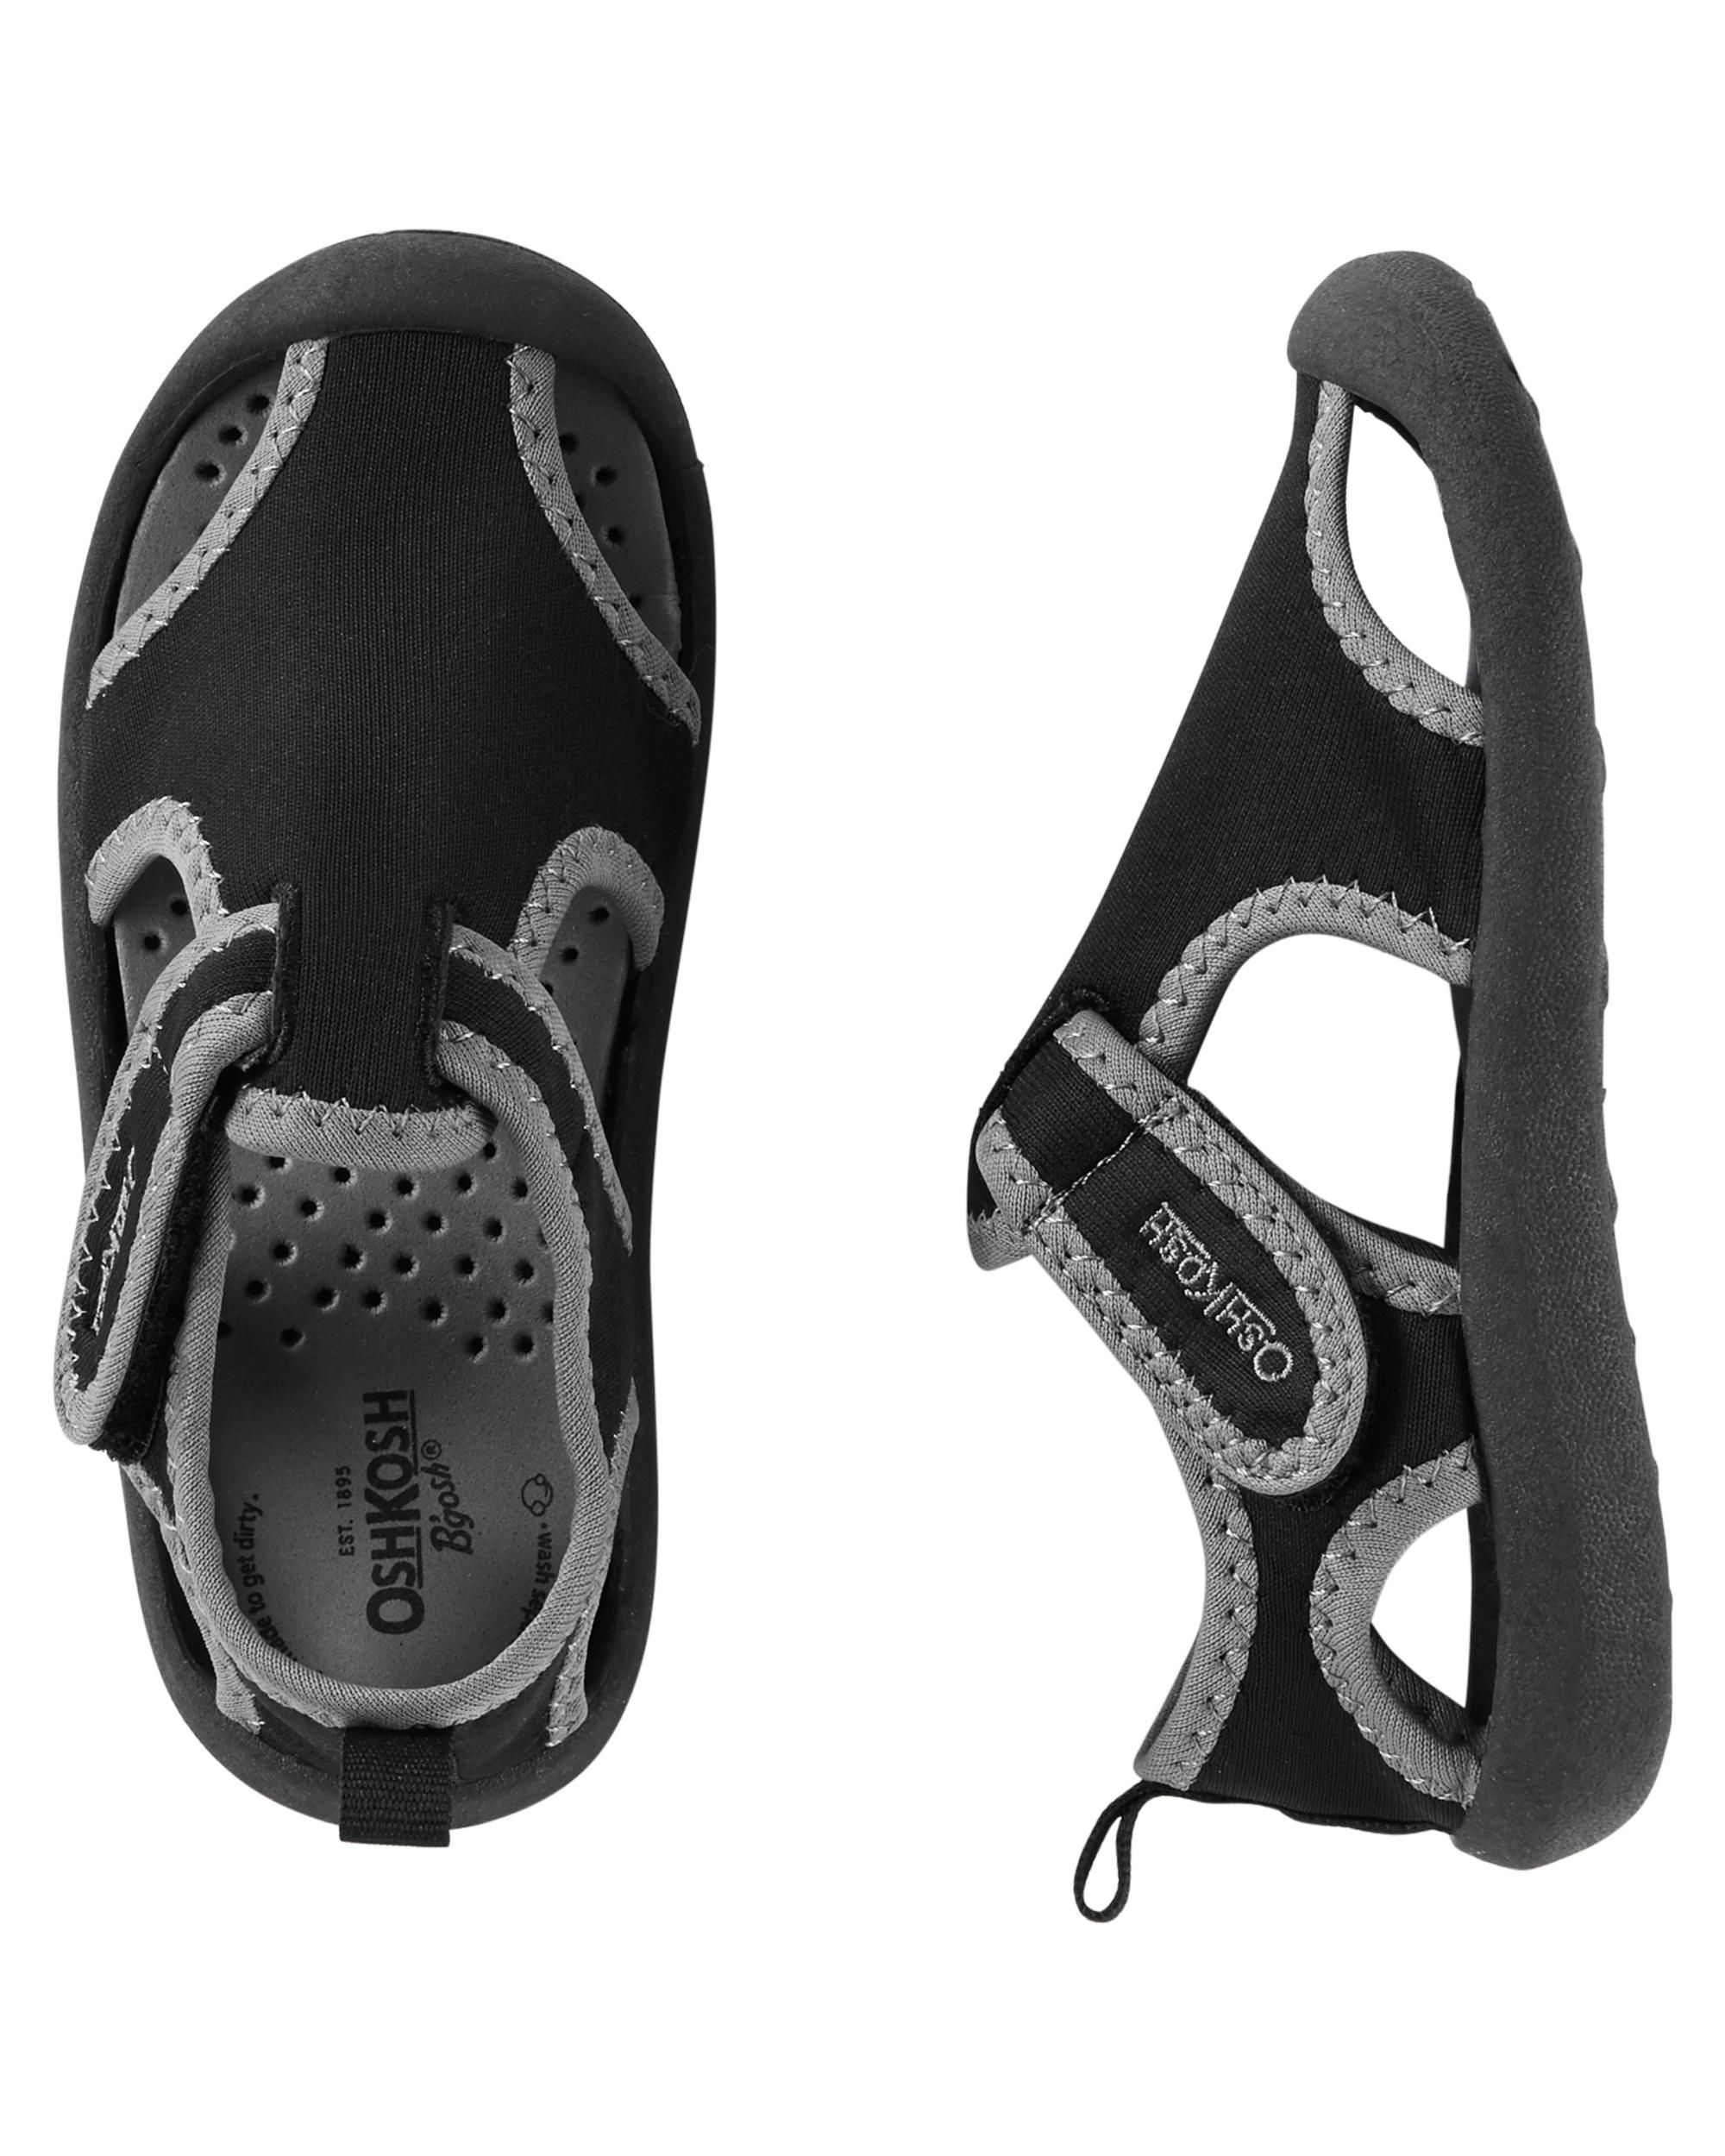 OshKosh Aquatic Shoes